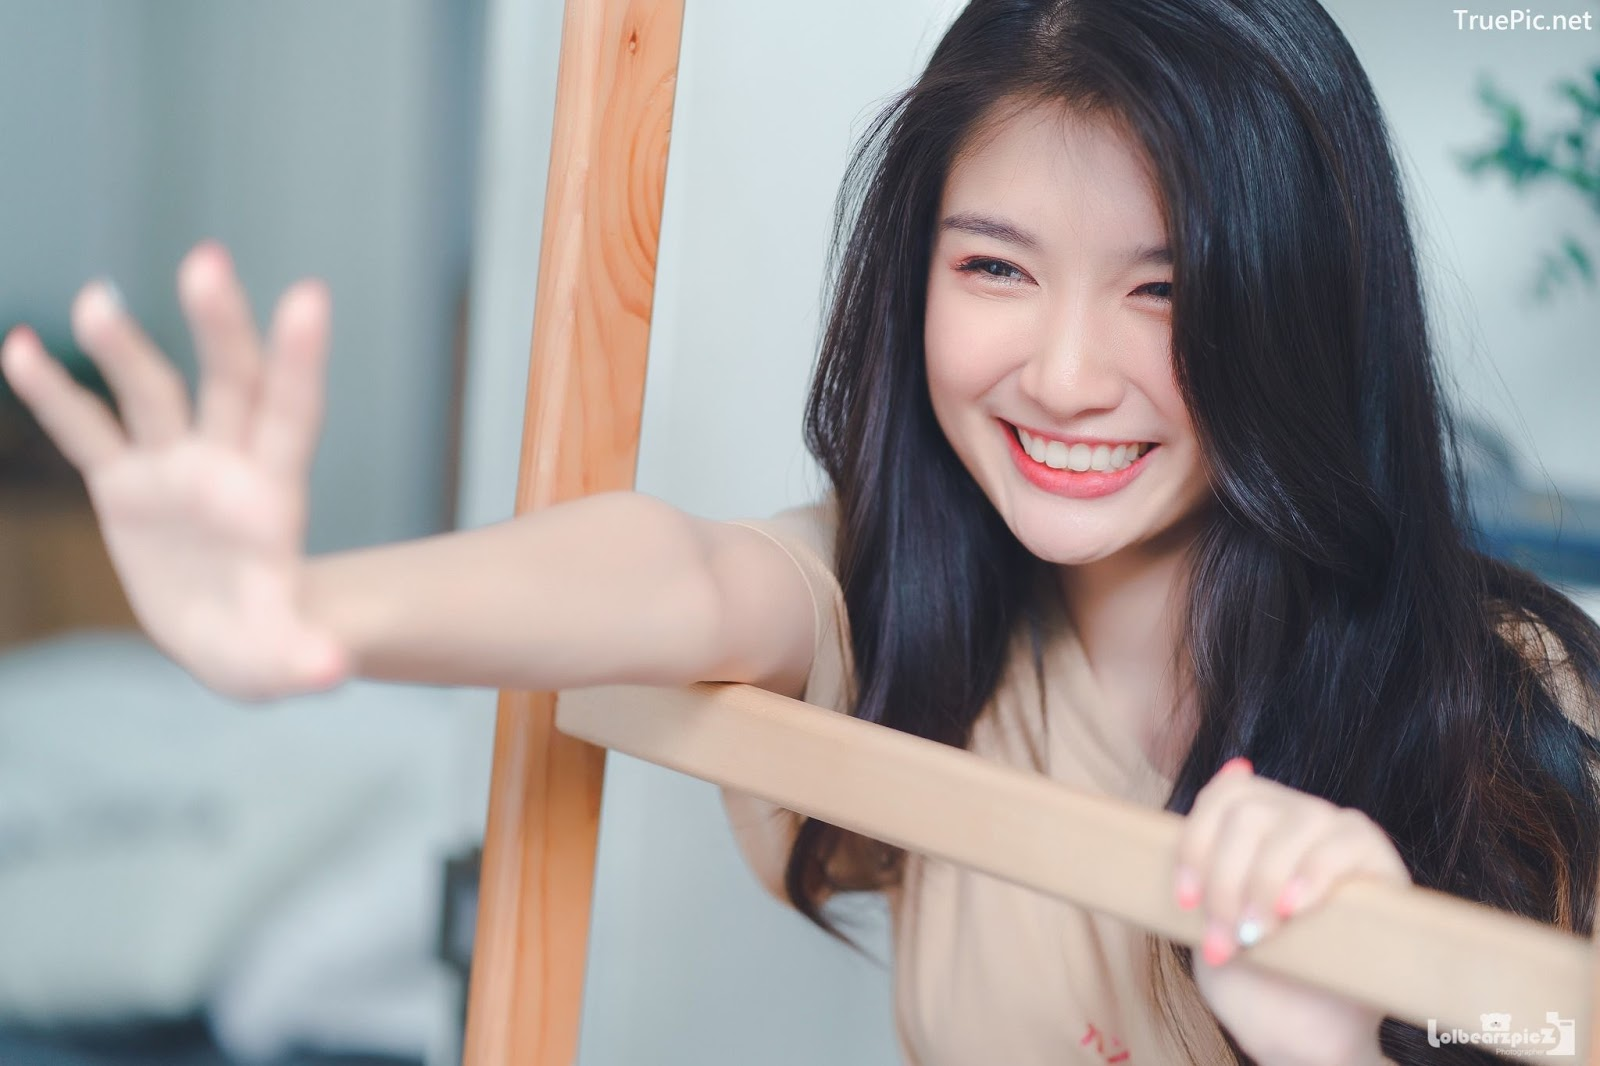 Image Thailand Model - Yatawee Limsiripothong - The Power Of Love - TruePic.net - Picture-6